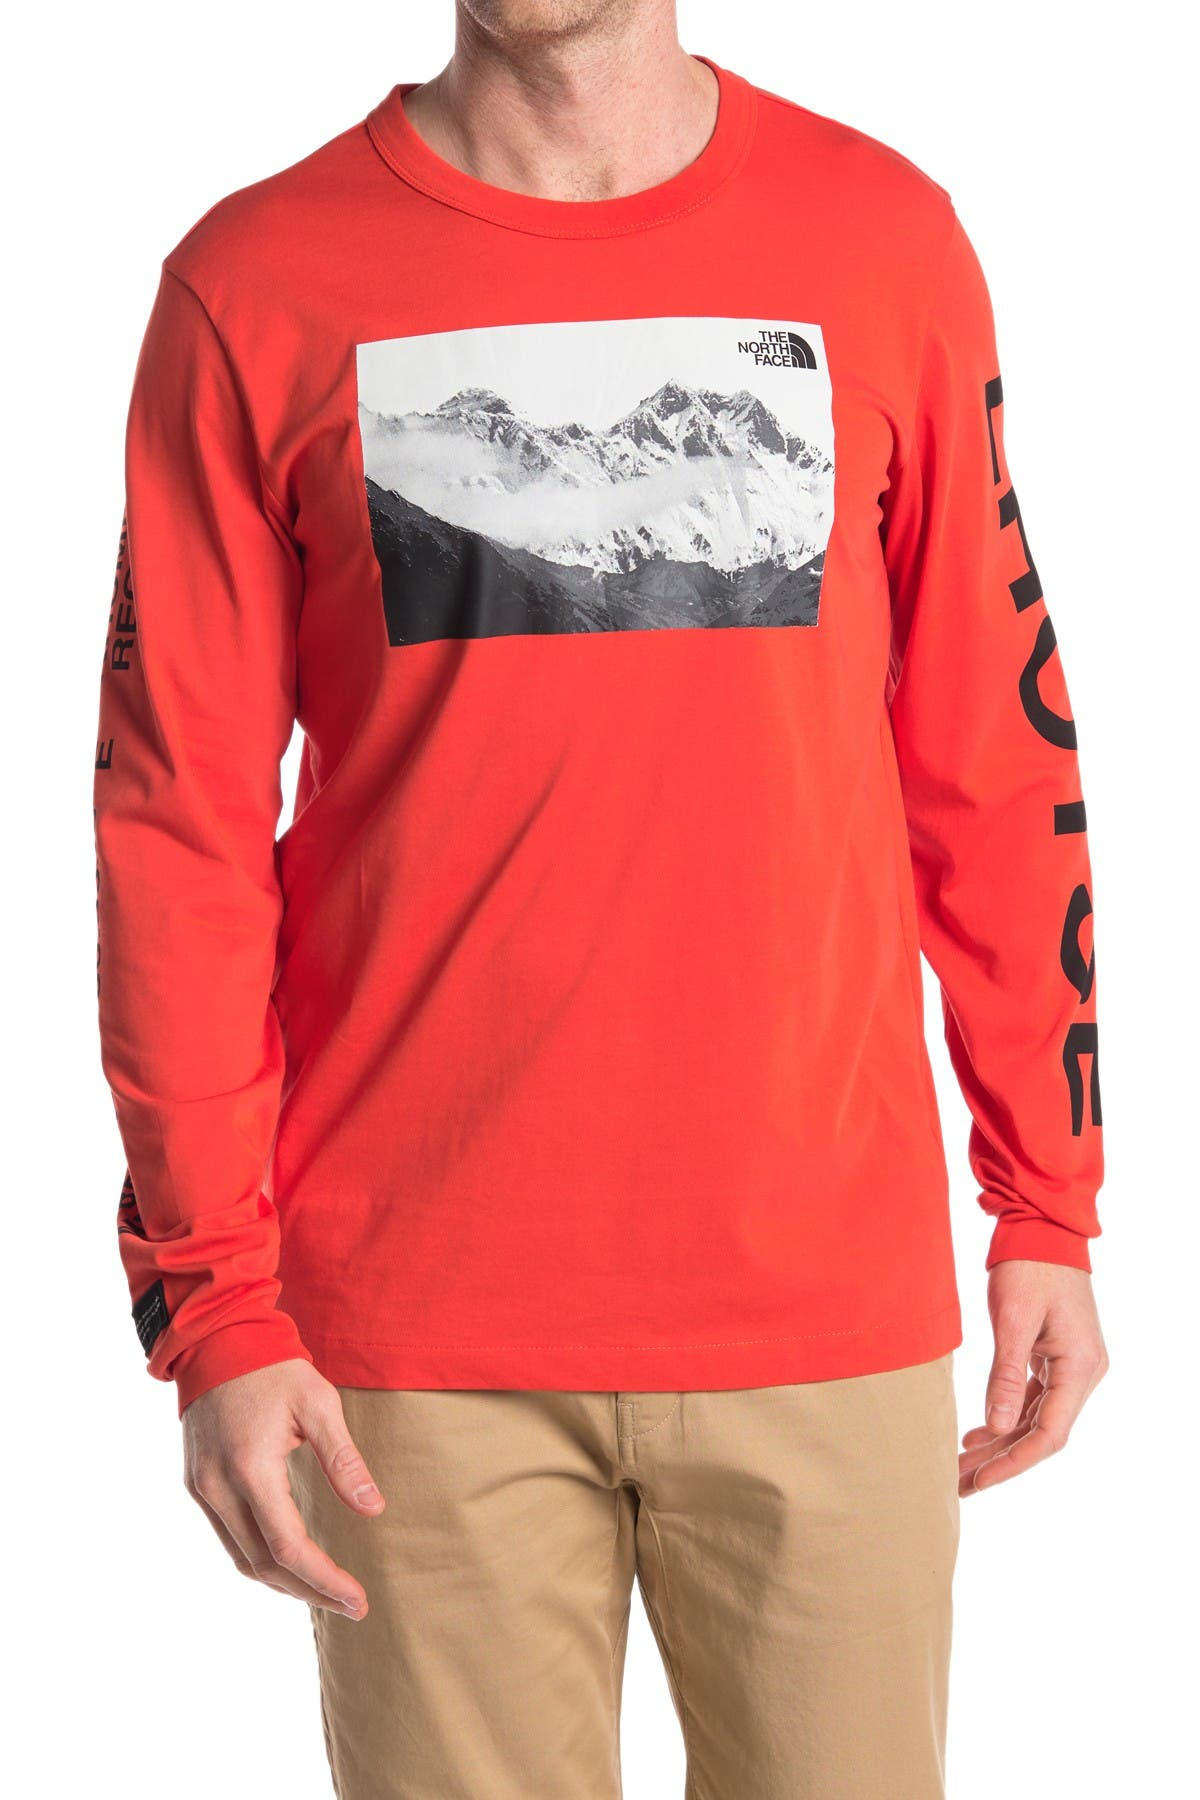 Image of The North Face Mountain Long Sleeve T-Shirt